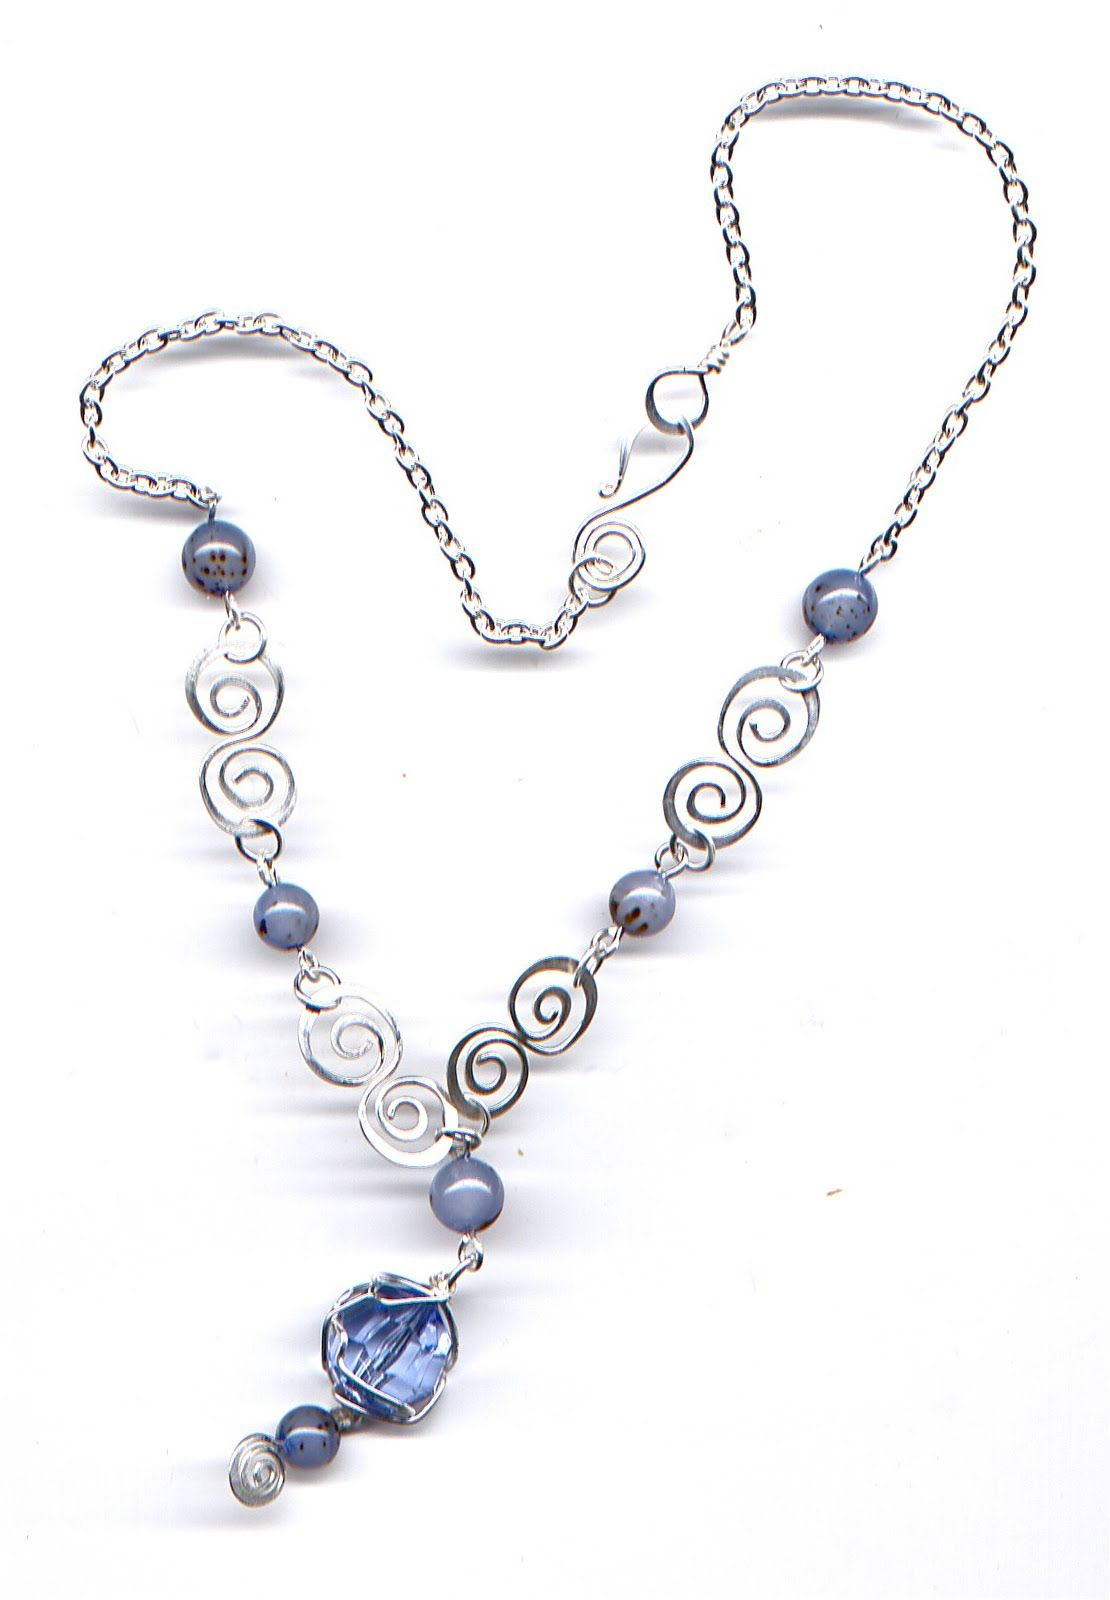 Free Wire Wrapping Patterns